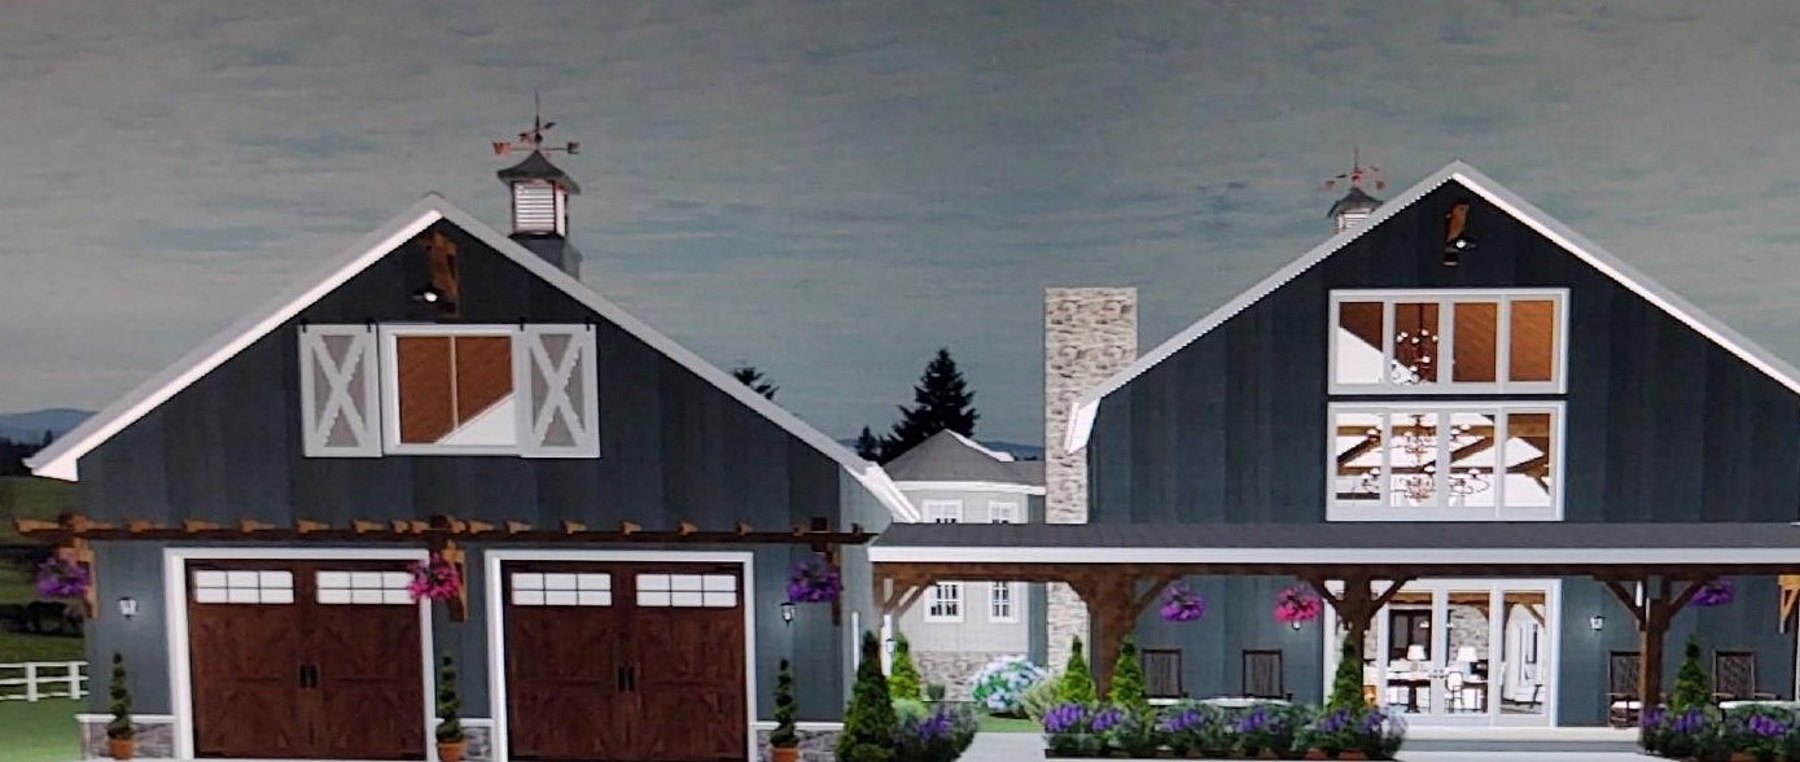 Large barndominium design with a covered front porch and silo living space.